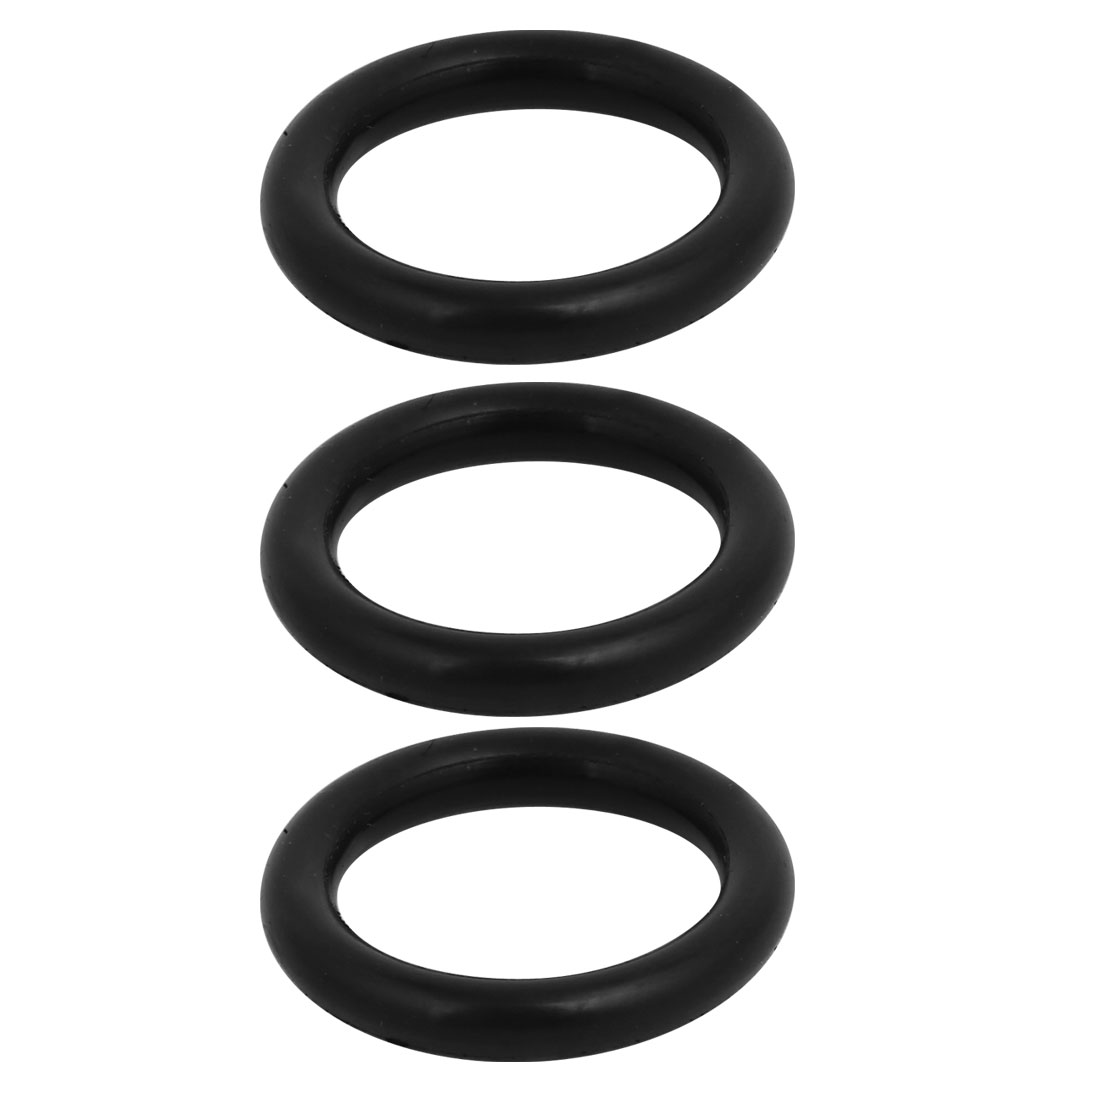 22mm Diameter Rubber O-Ring Replacement Part Black 3pcs for Electric Power Tools - image 2 of 2